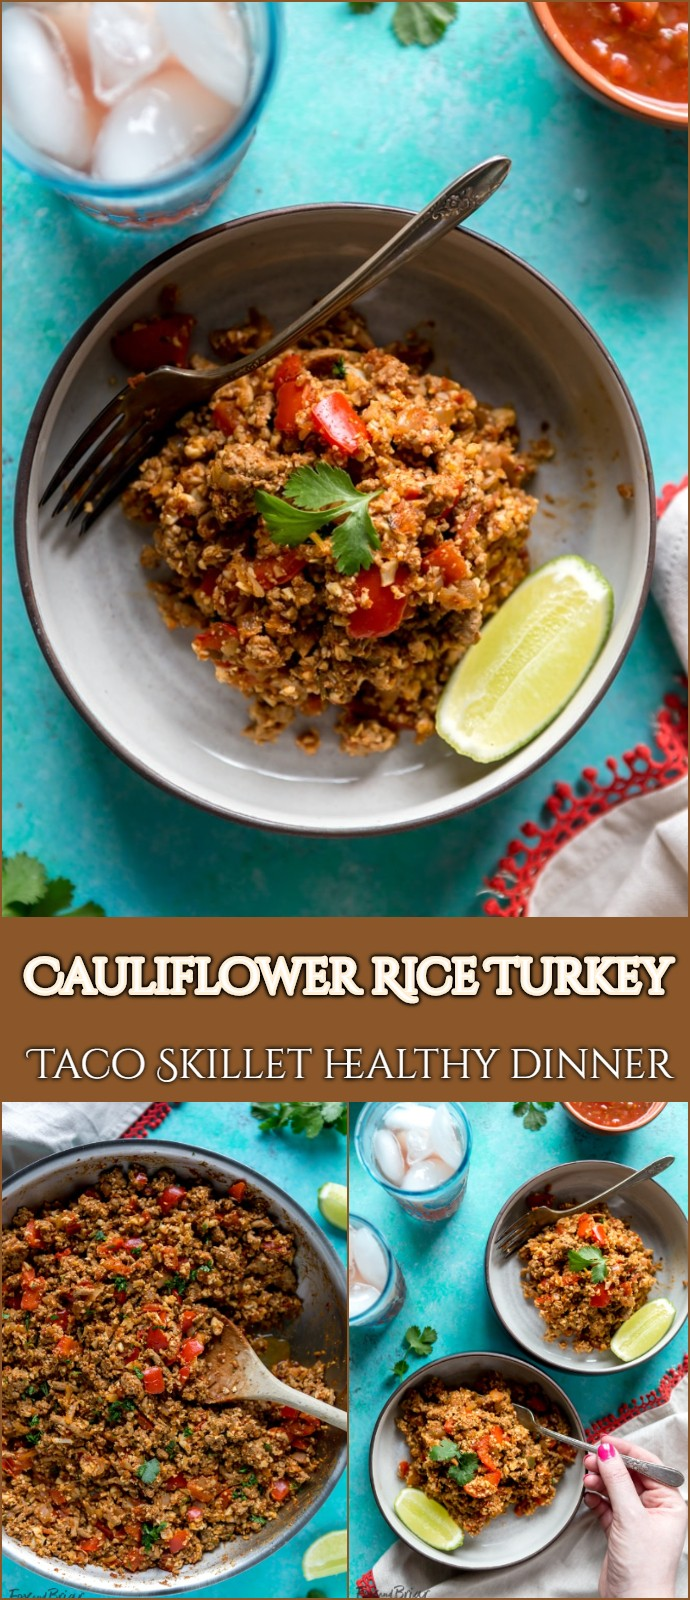 Cauliflower Rice Turkey Taco Skillet healthy dinner